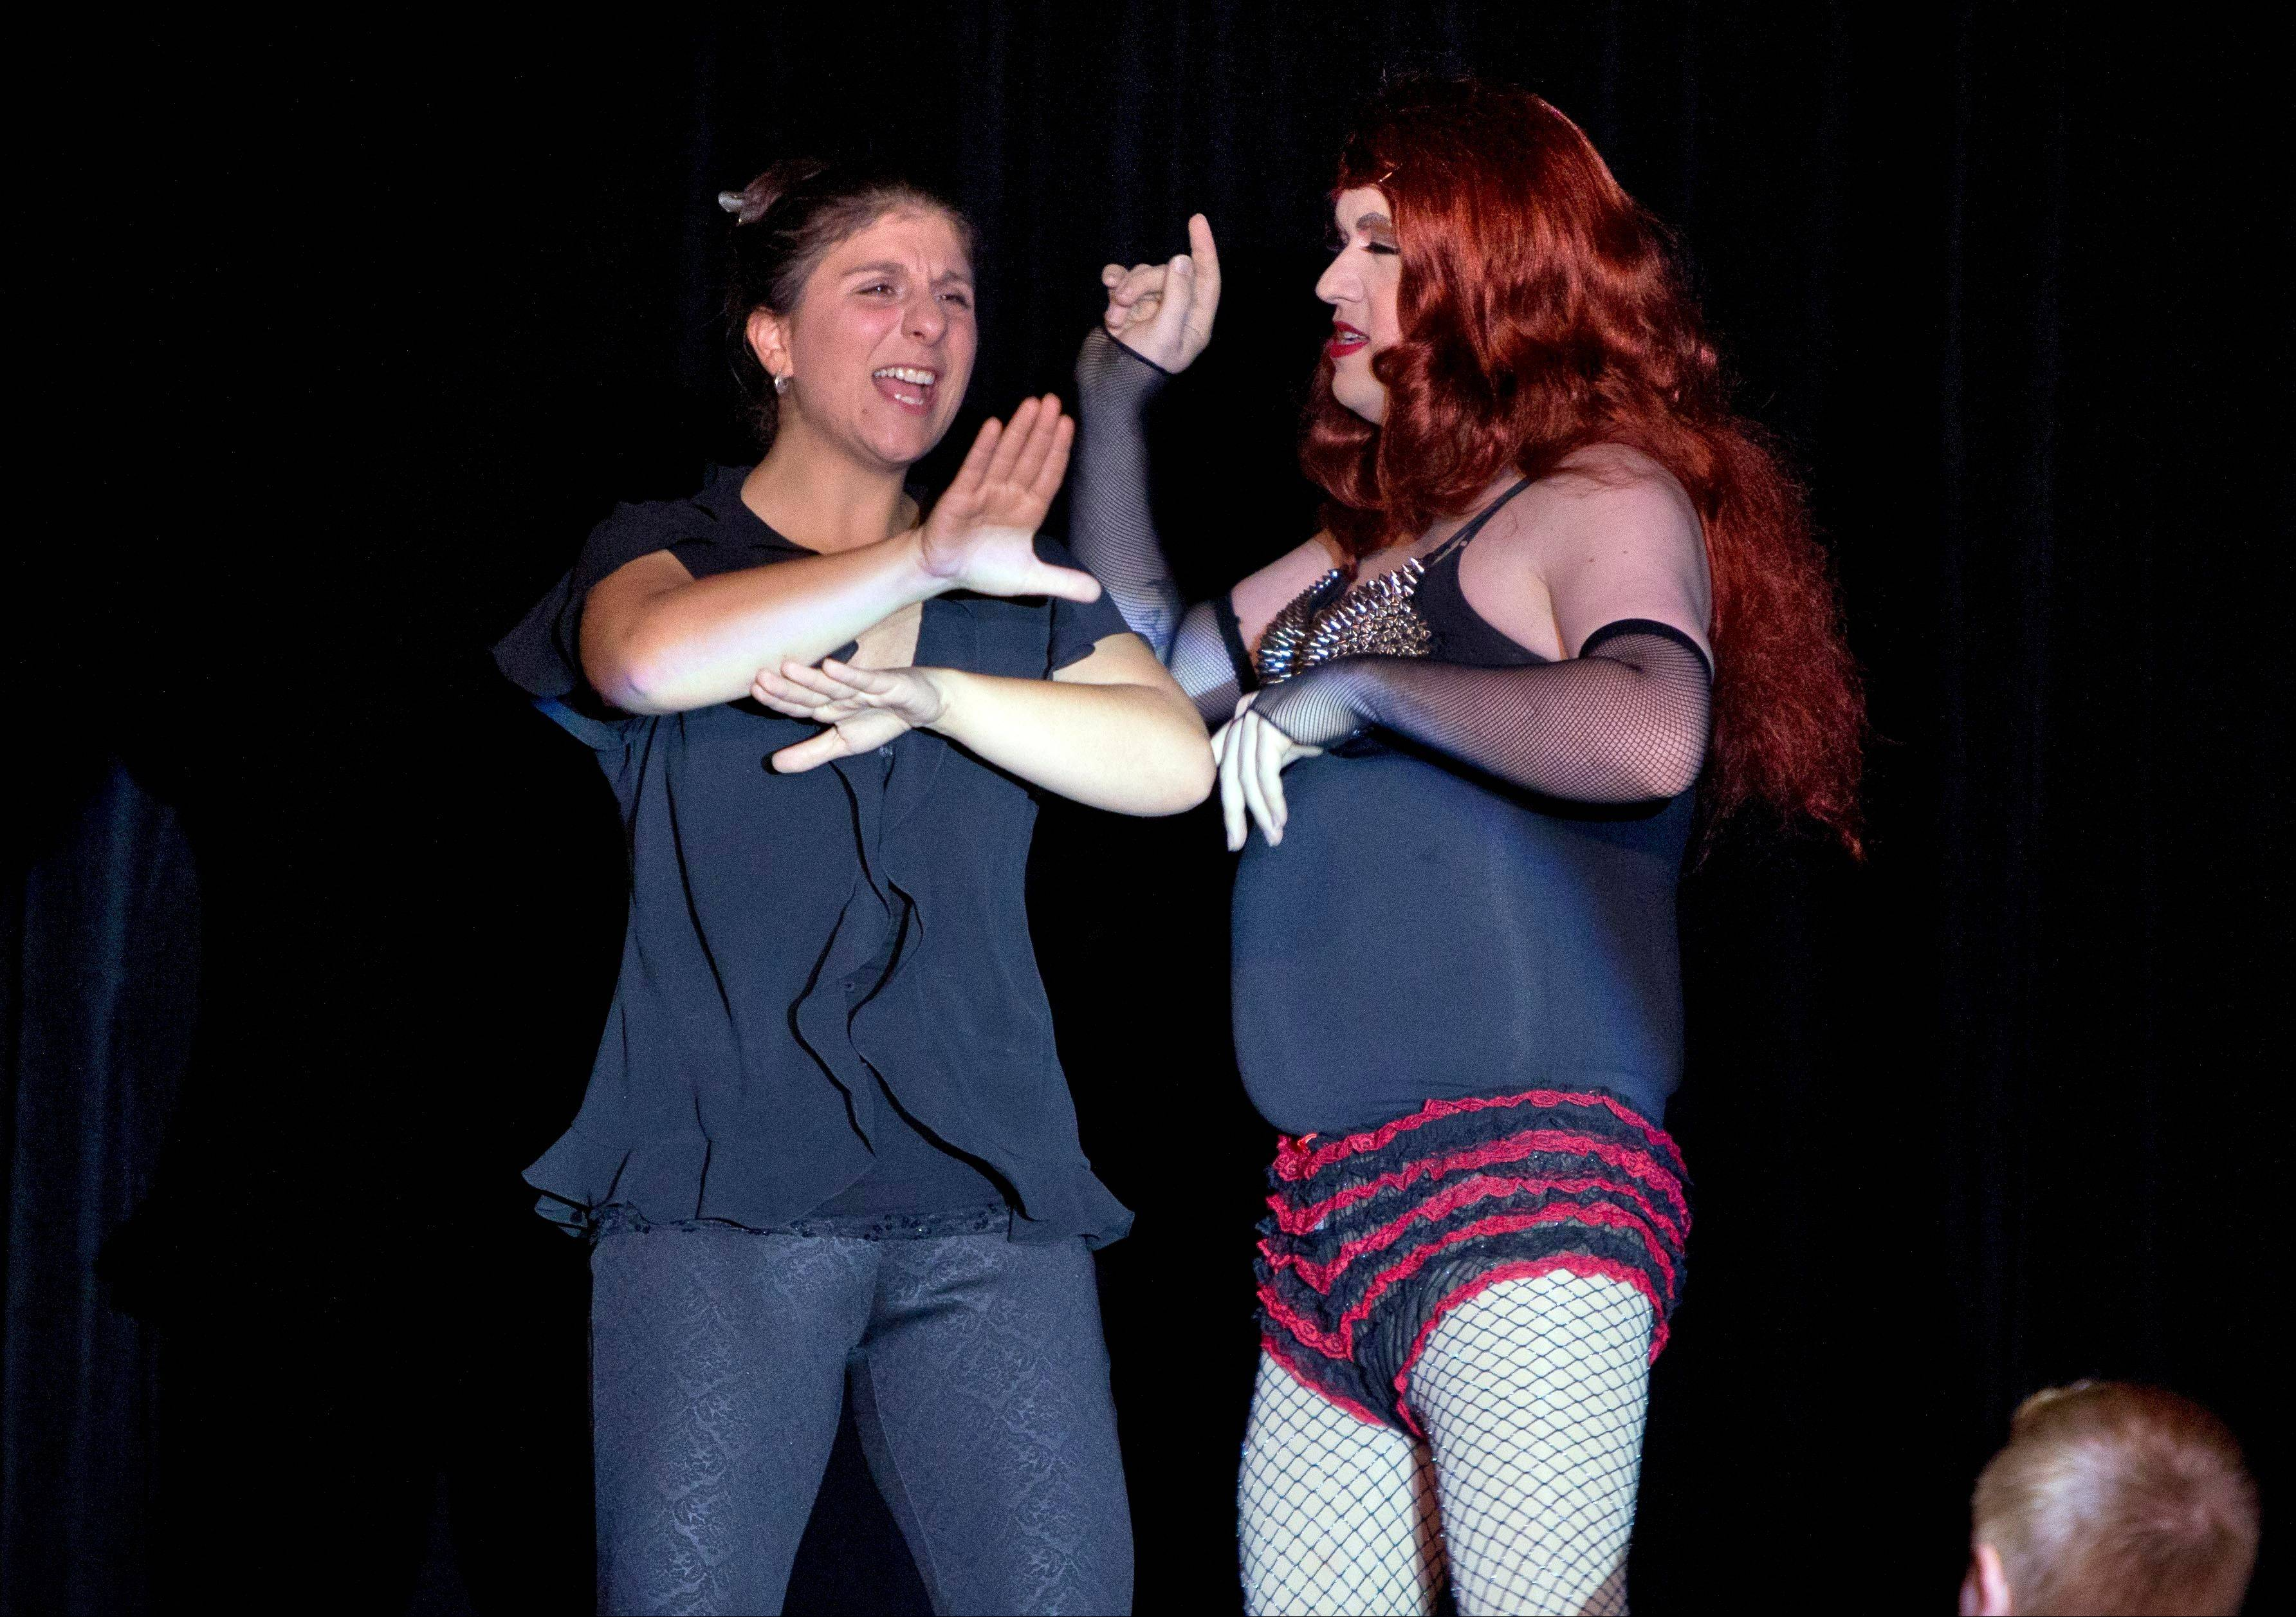 Holly Maniatty, left, an American Sign Language interpreter, signs during a performance by a contestant in the the Royal Majesty Drag Show and Competition in Portland, Maine. The 33-year-old has become an Internet sensation for the energetic way she uses dance moves, body language and American Sign Language to bring musical performances alive for those who can't hear.